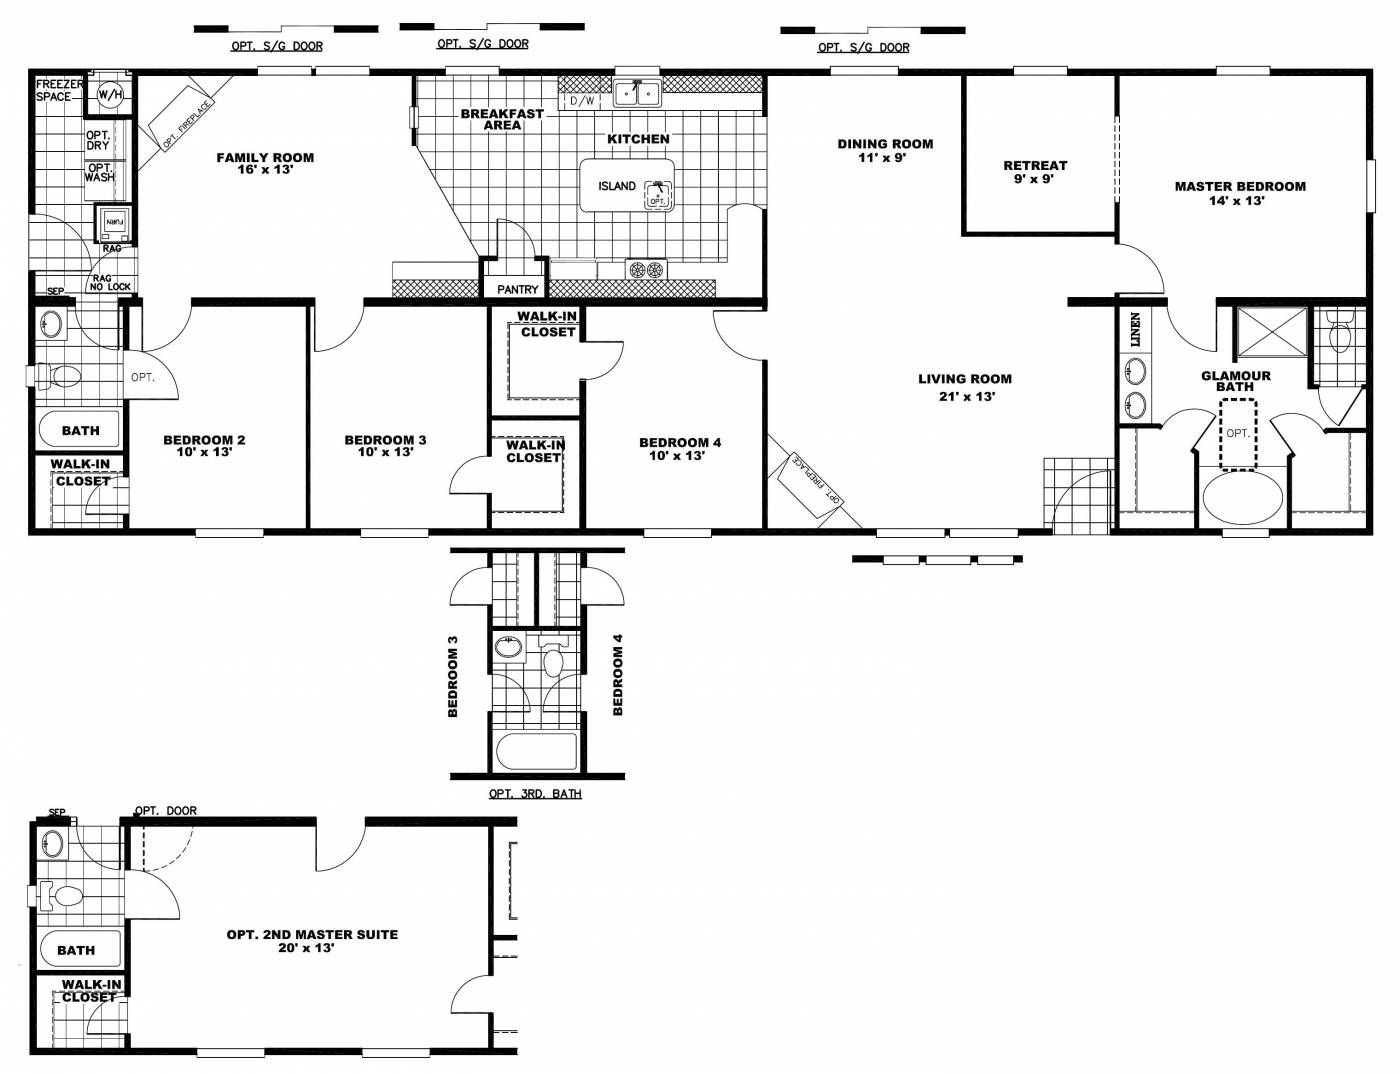 Manufactured Homes Clayton Sed 2876 4a Blue Diamond Home Amp Rv Ranch House Floor Plans Single Level House Plans Bedroom Floor Plans